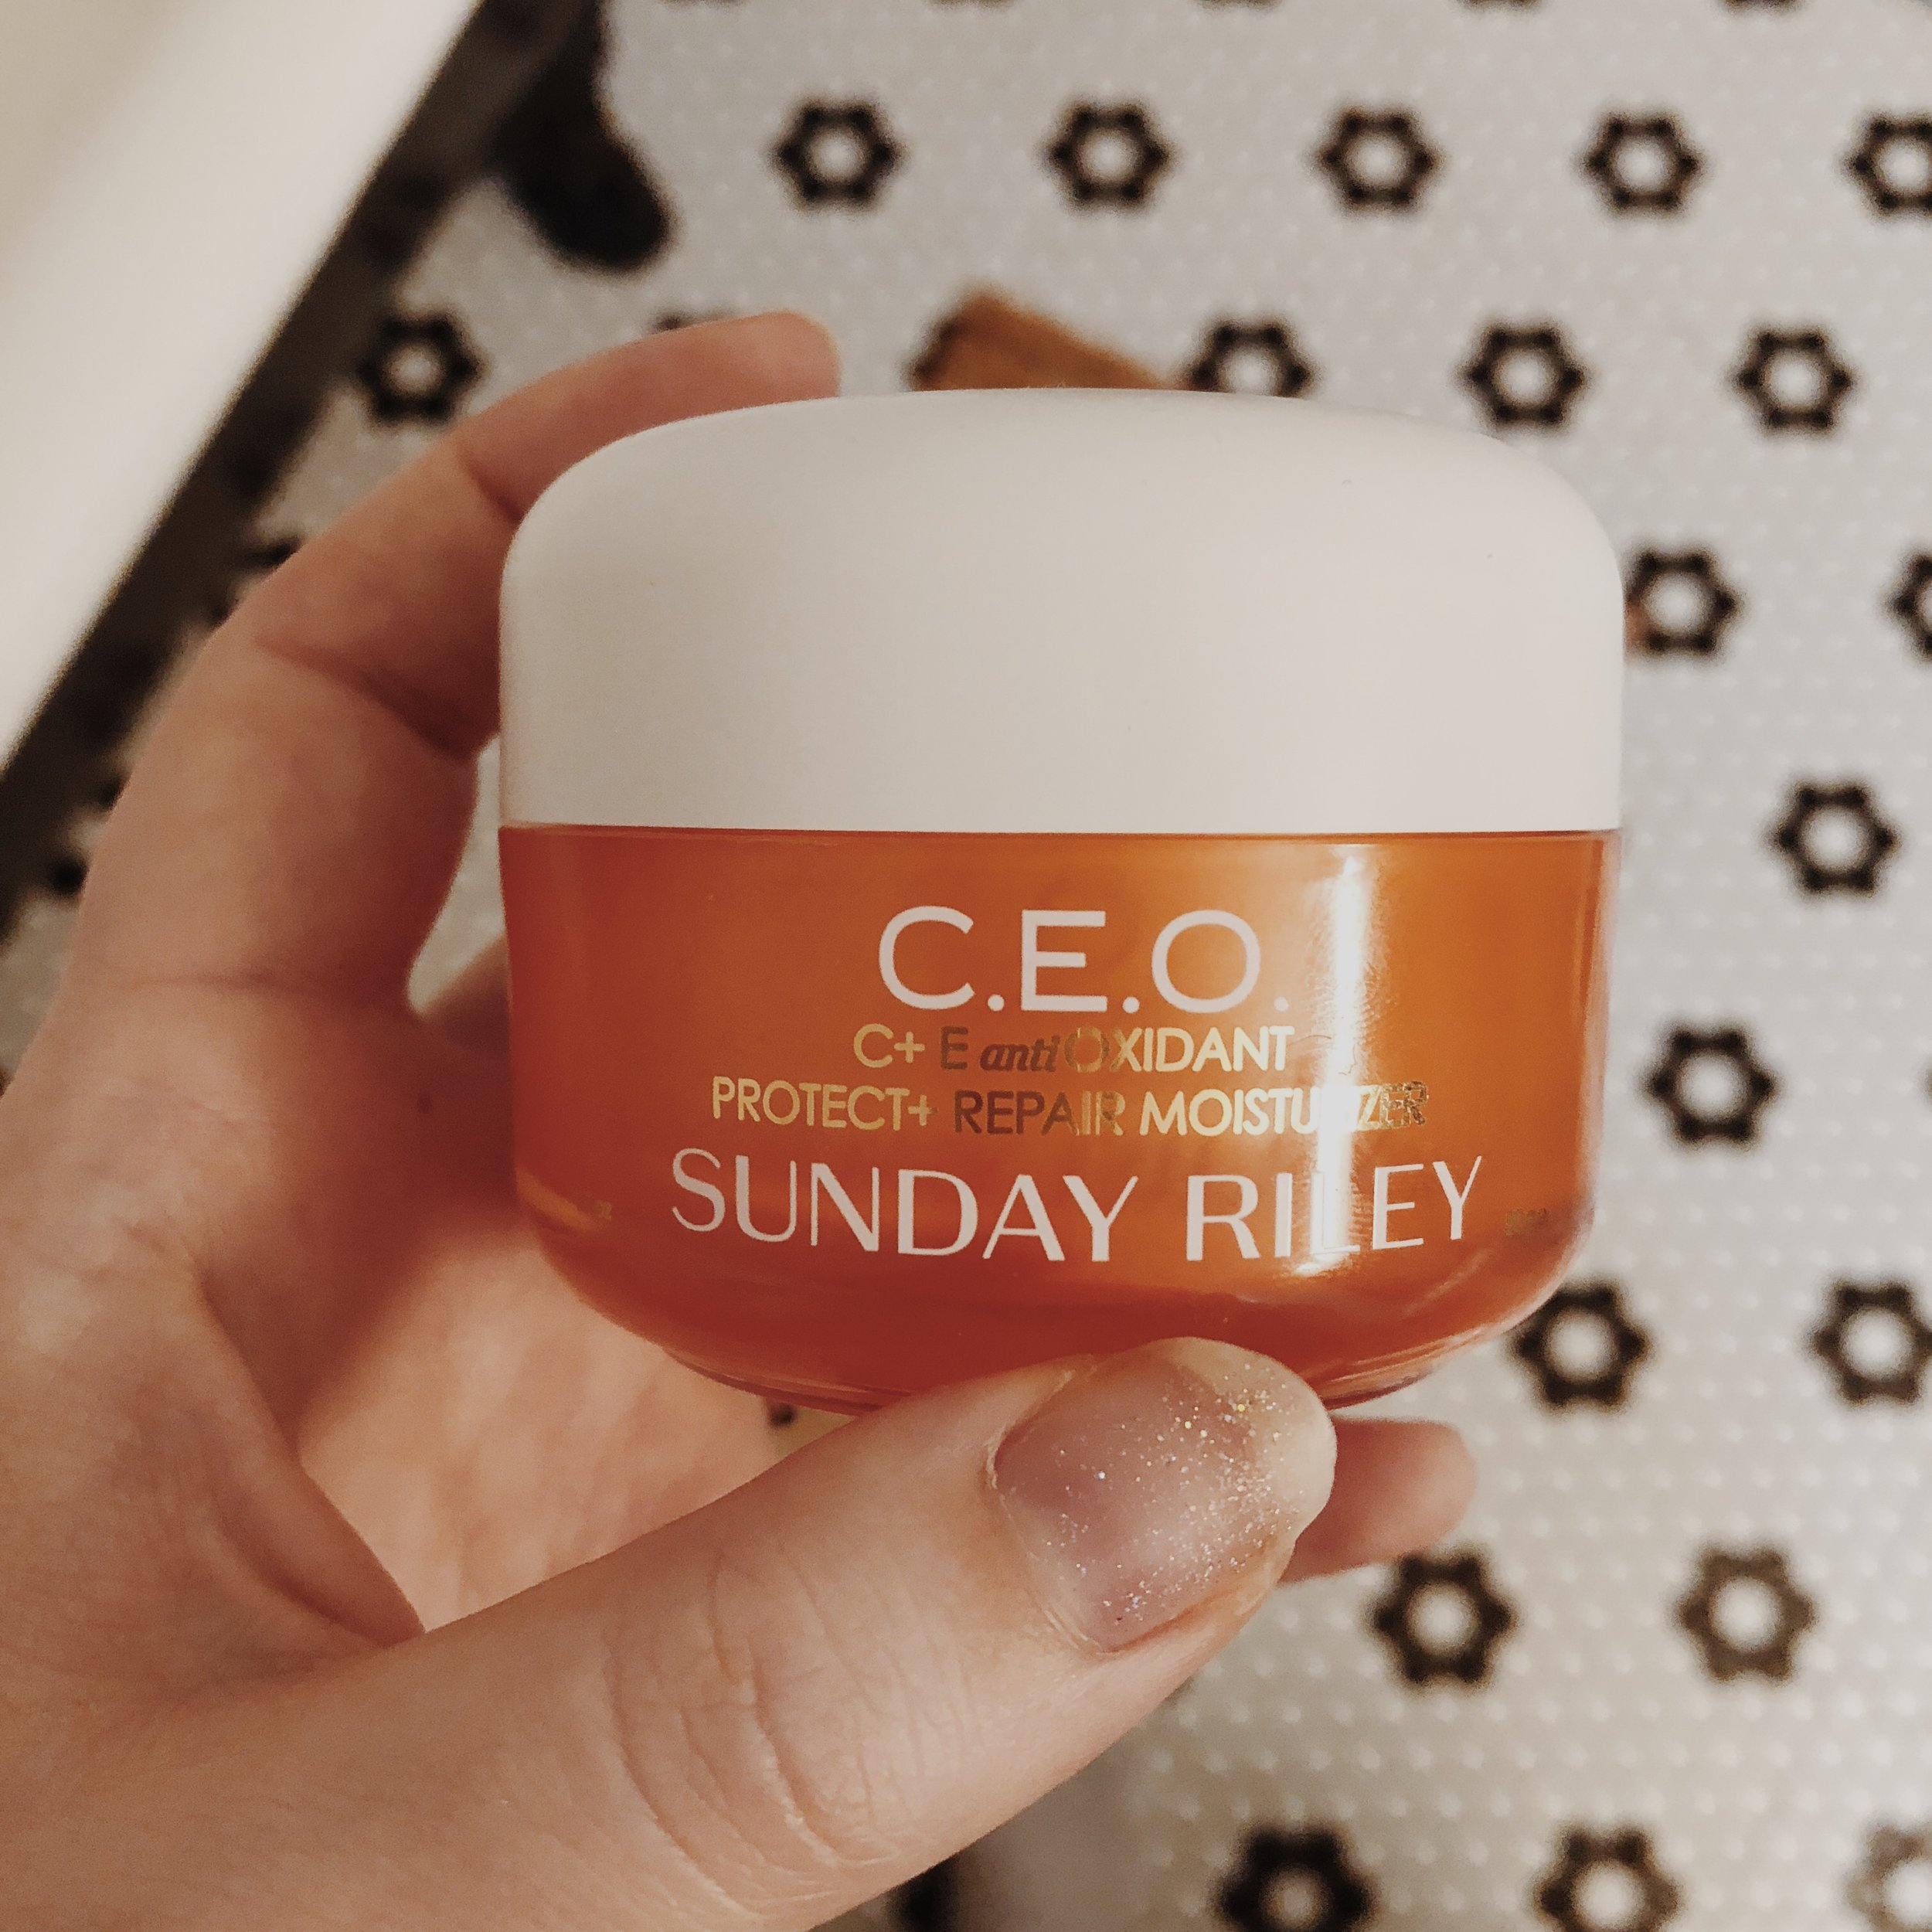 C.E.O. Moisturizer | Sunday Riley